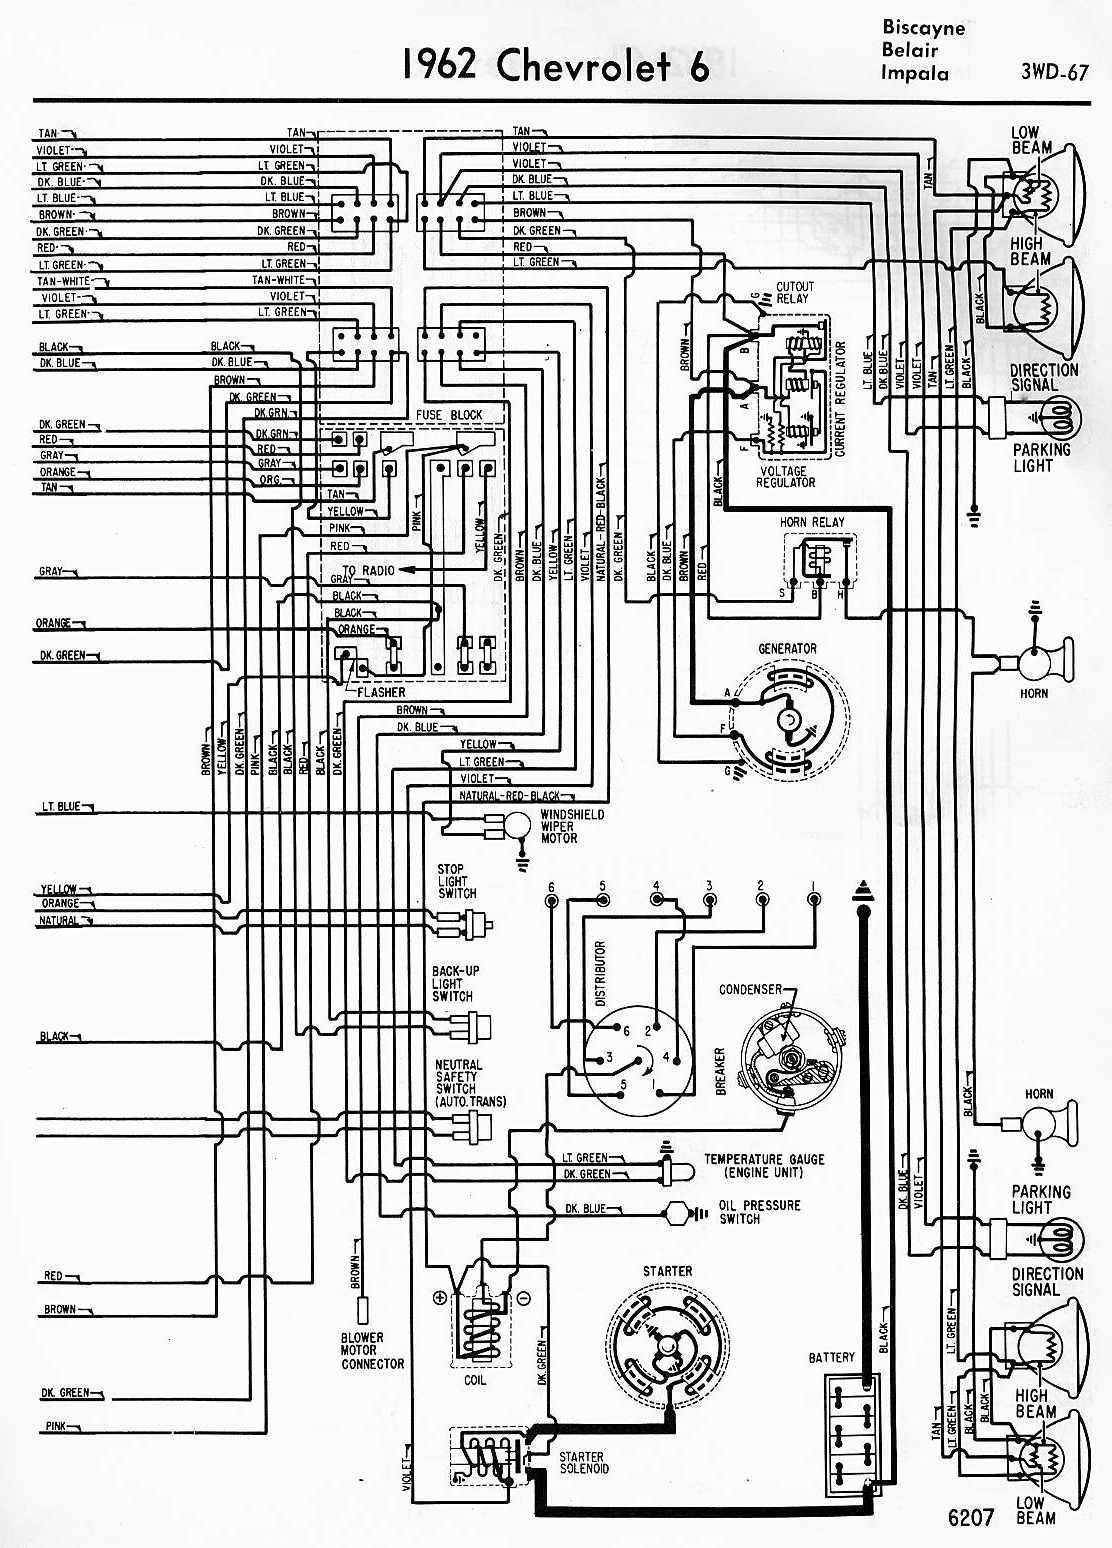 66 6 cylinder gm wiring harness diagram wiring diagrams rh 3 kunstvorort waltrop de automotive wiring [ 1112 x 1548 Pixel ]